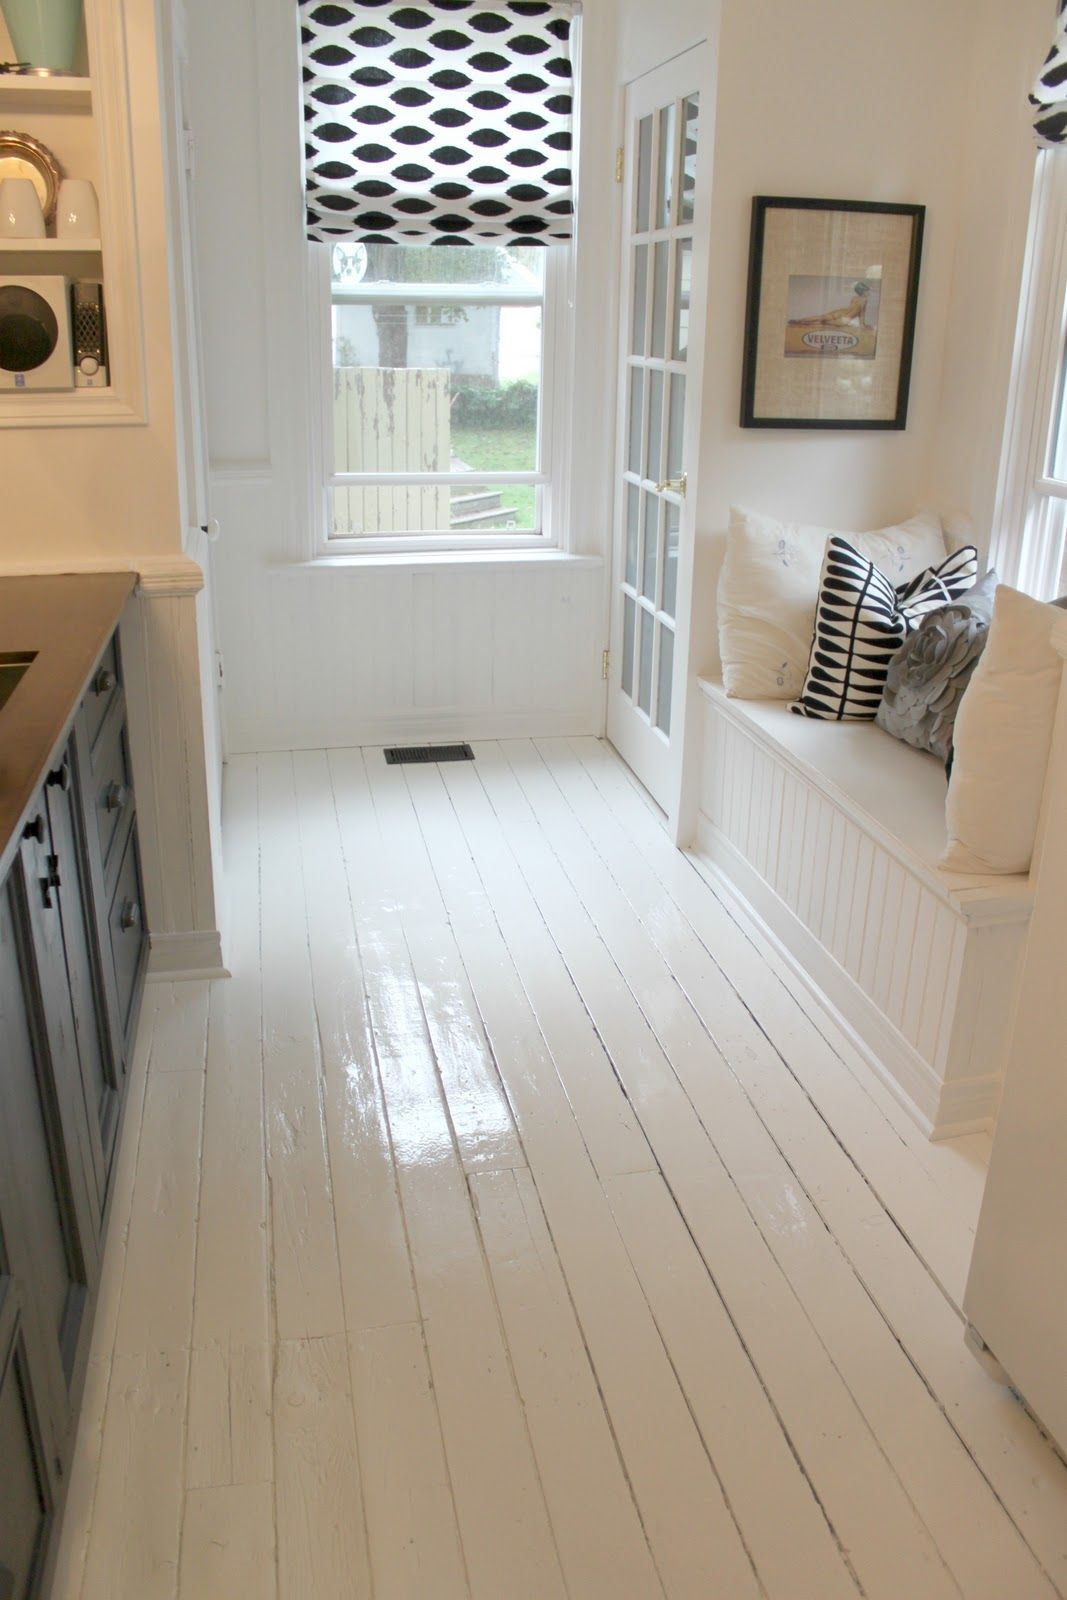 Great Little Nook In A Kitchen Made By Girl Featured The Clean Shiny Newly Painted White F White Painted Floors White Painted Wood Floors Painted Wood Floors